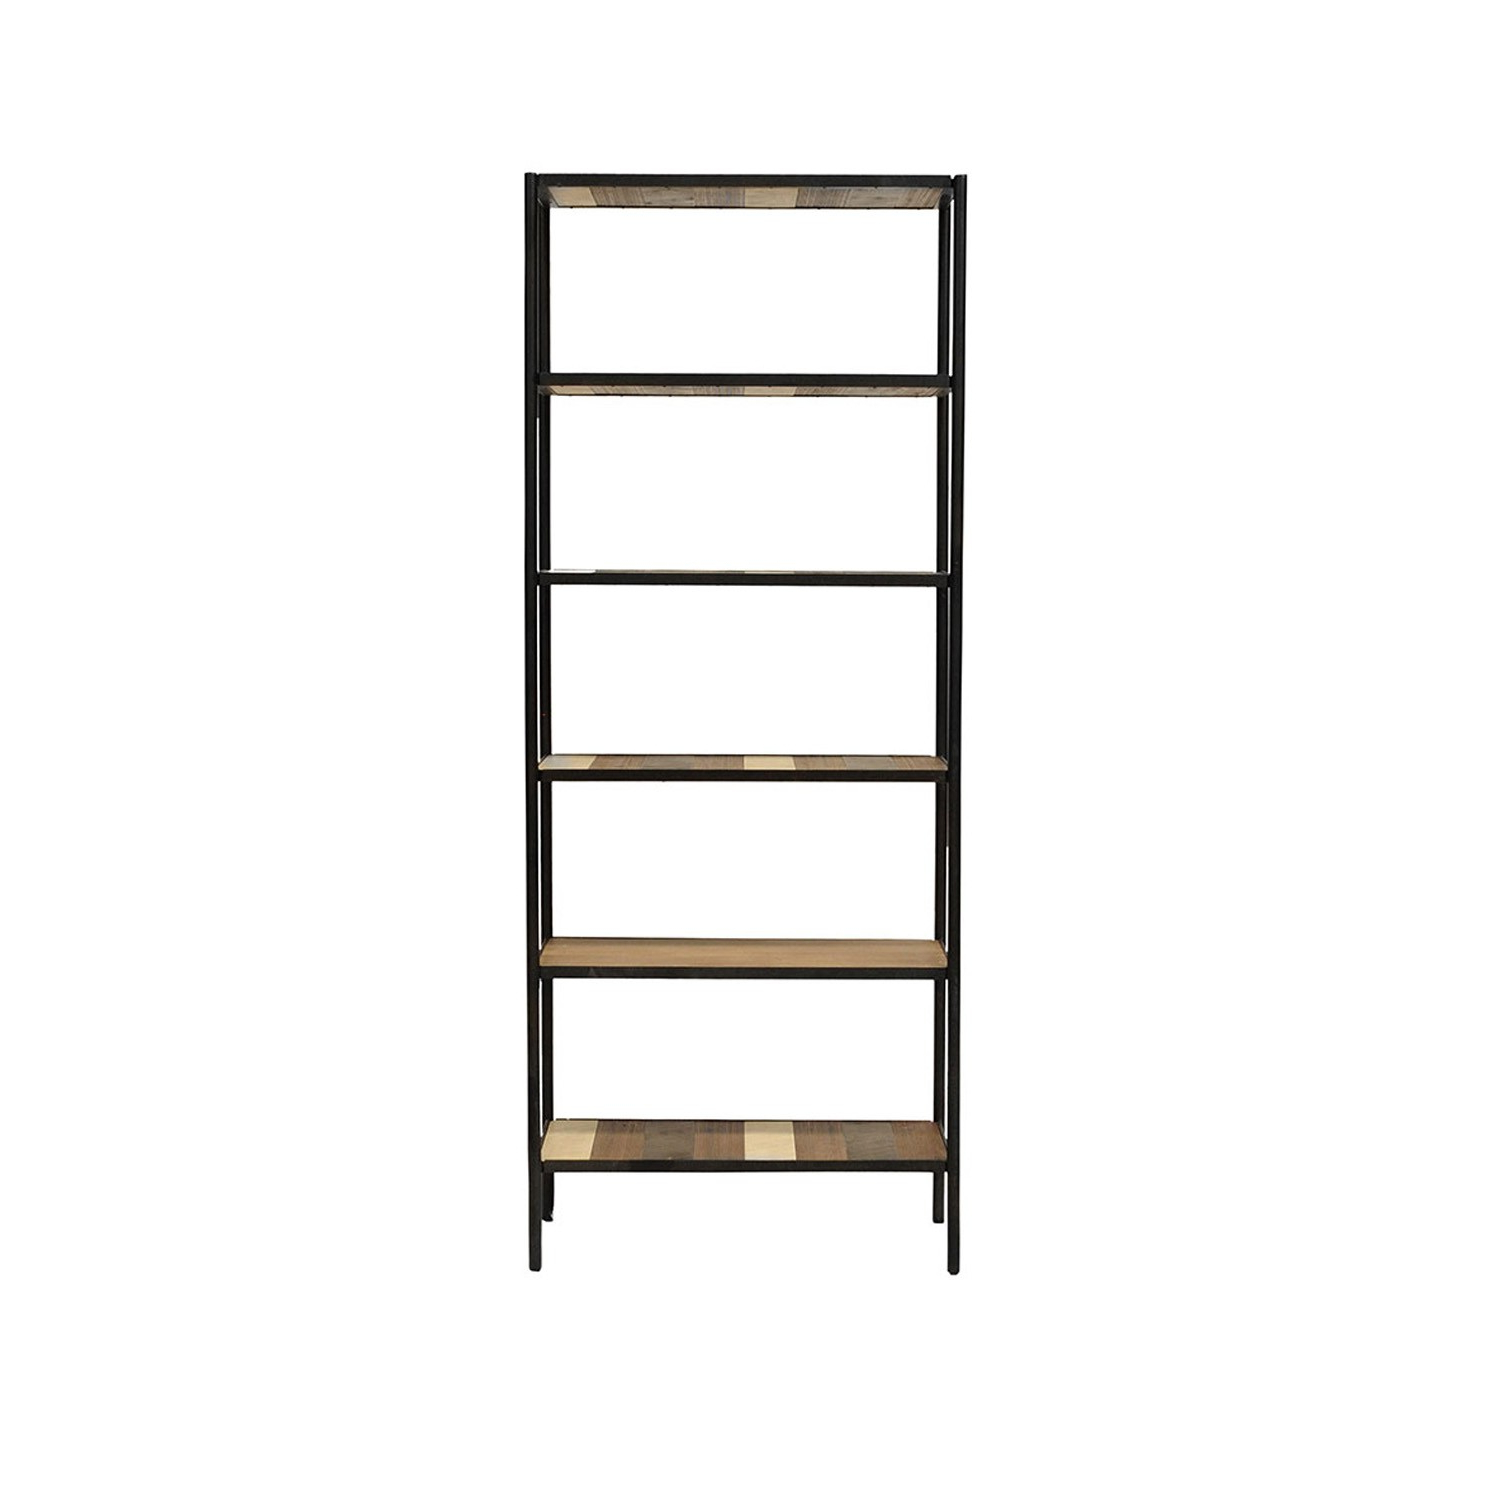 Trendy Acacia Wood Medley Medium Dining Tables With Metal Base In Medley Bookshelf  Small (View 8 of 26)